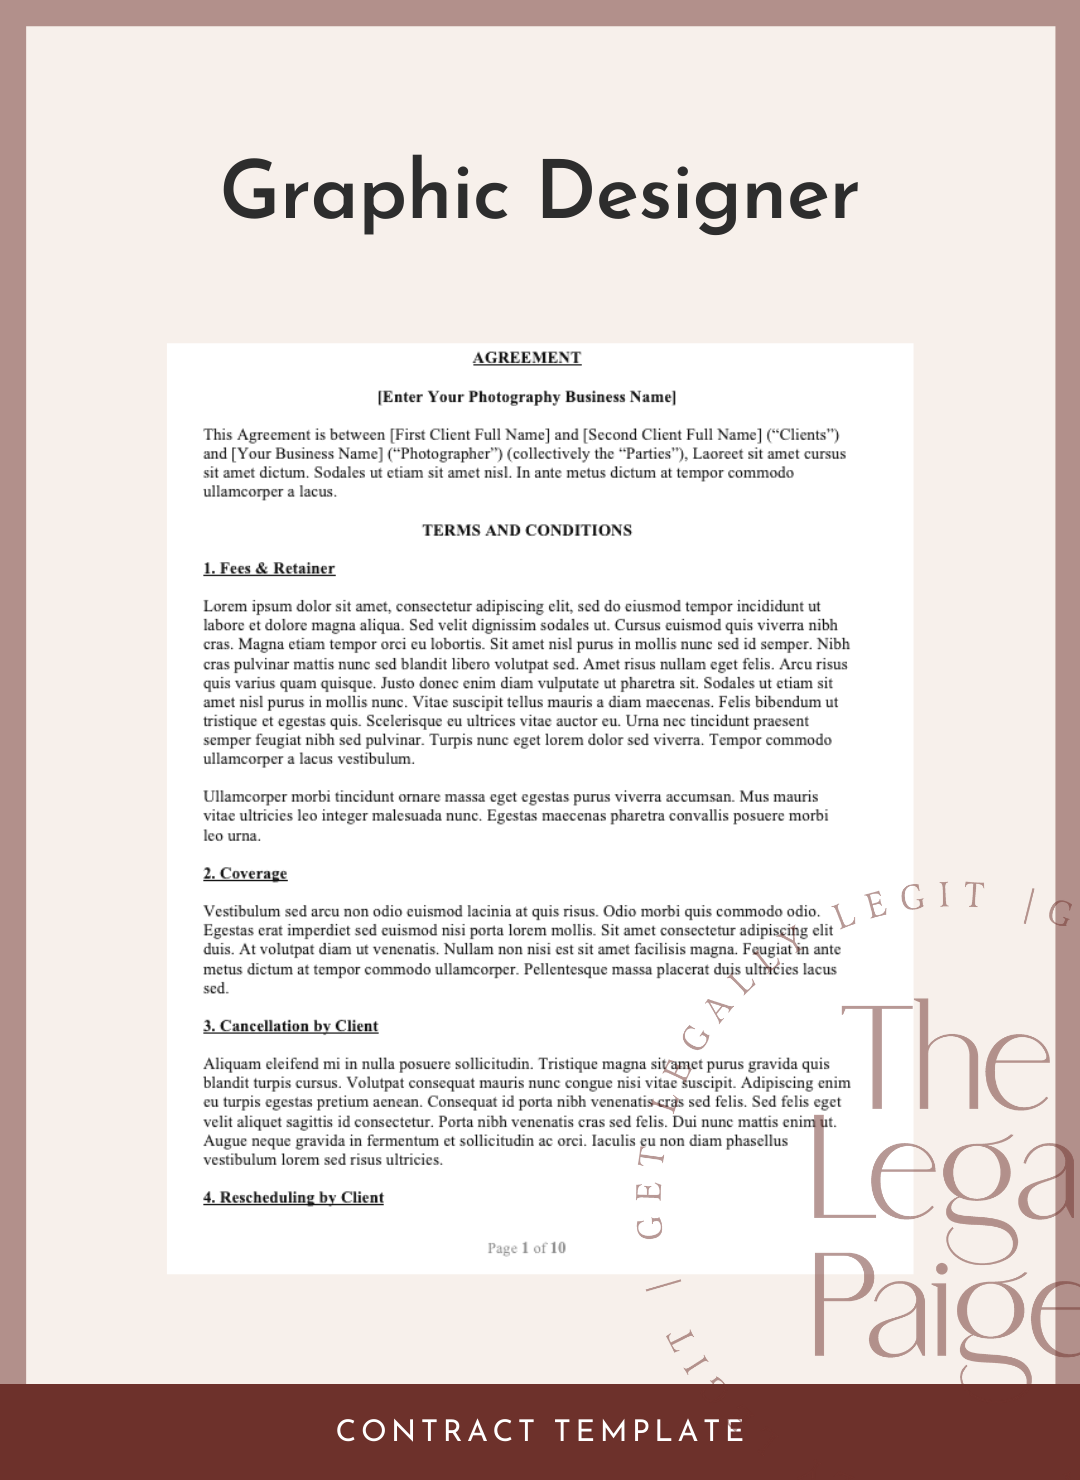 Graphic Designer Contract